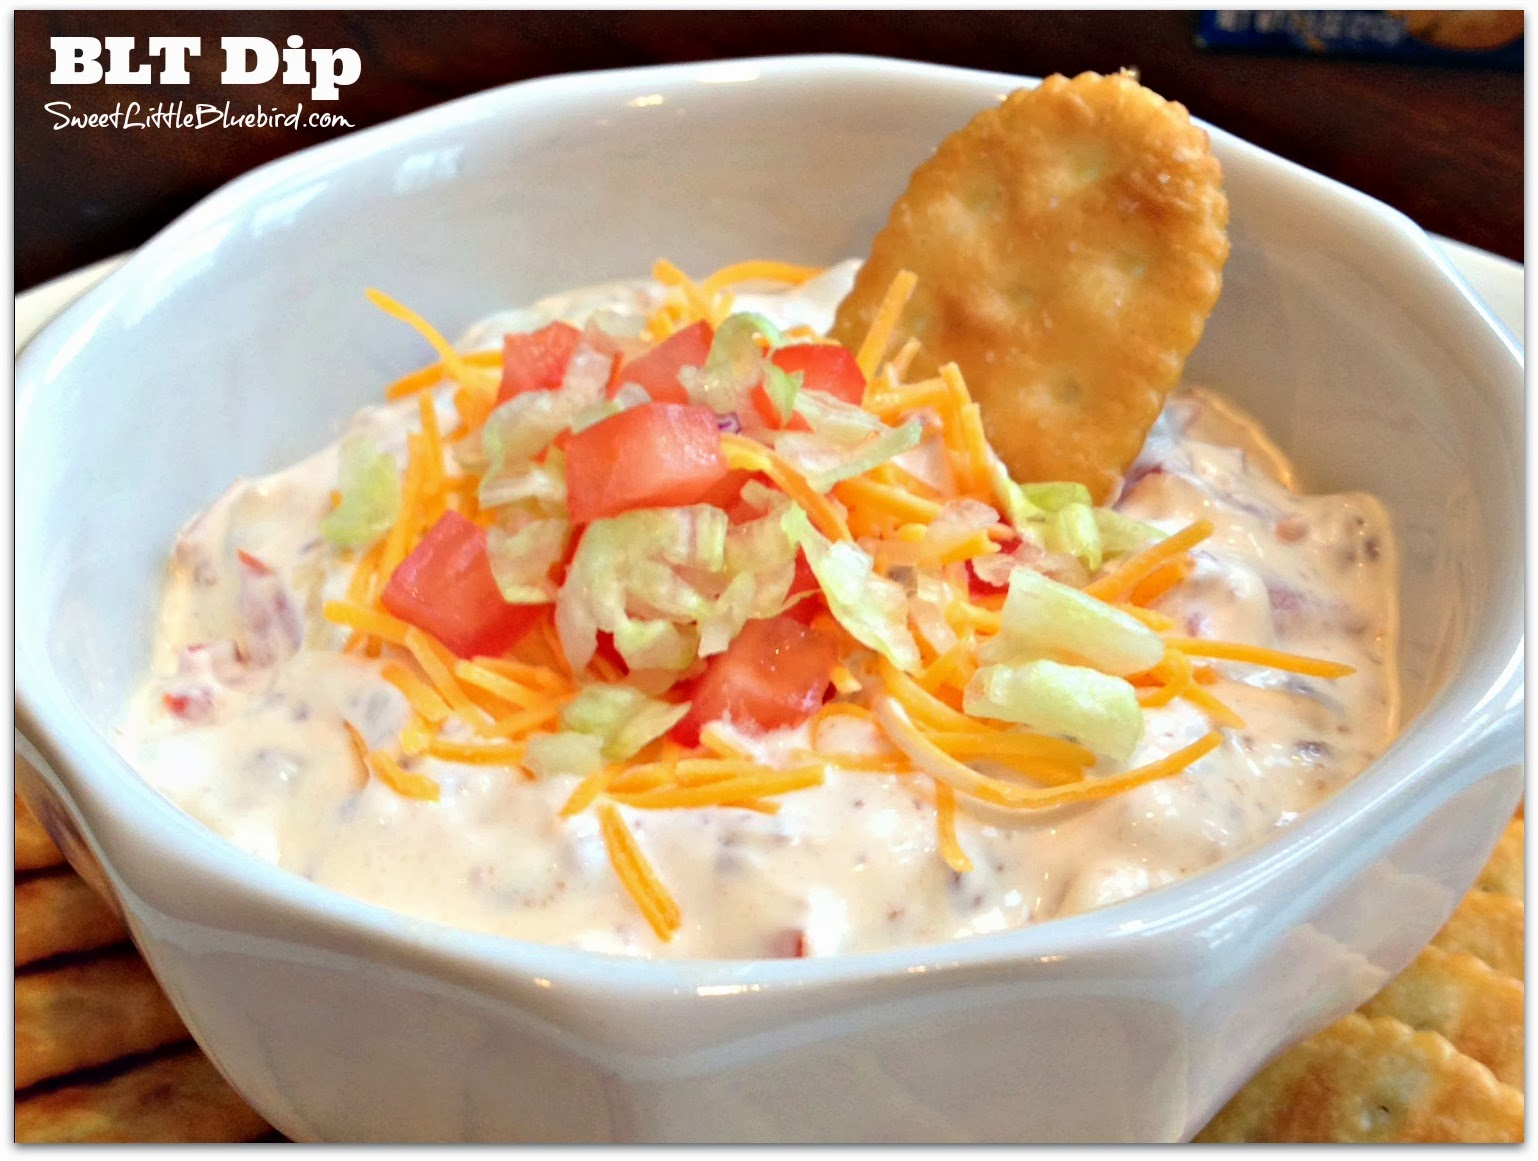 BLT Dip - Only 4 Ingredients!